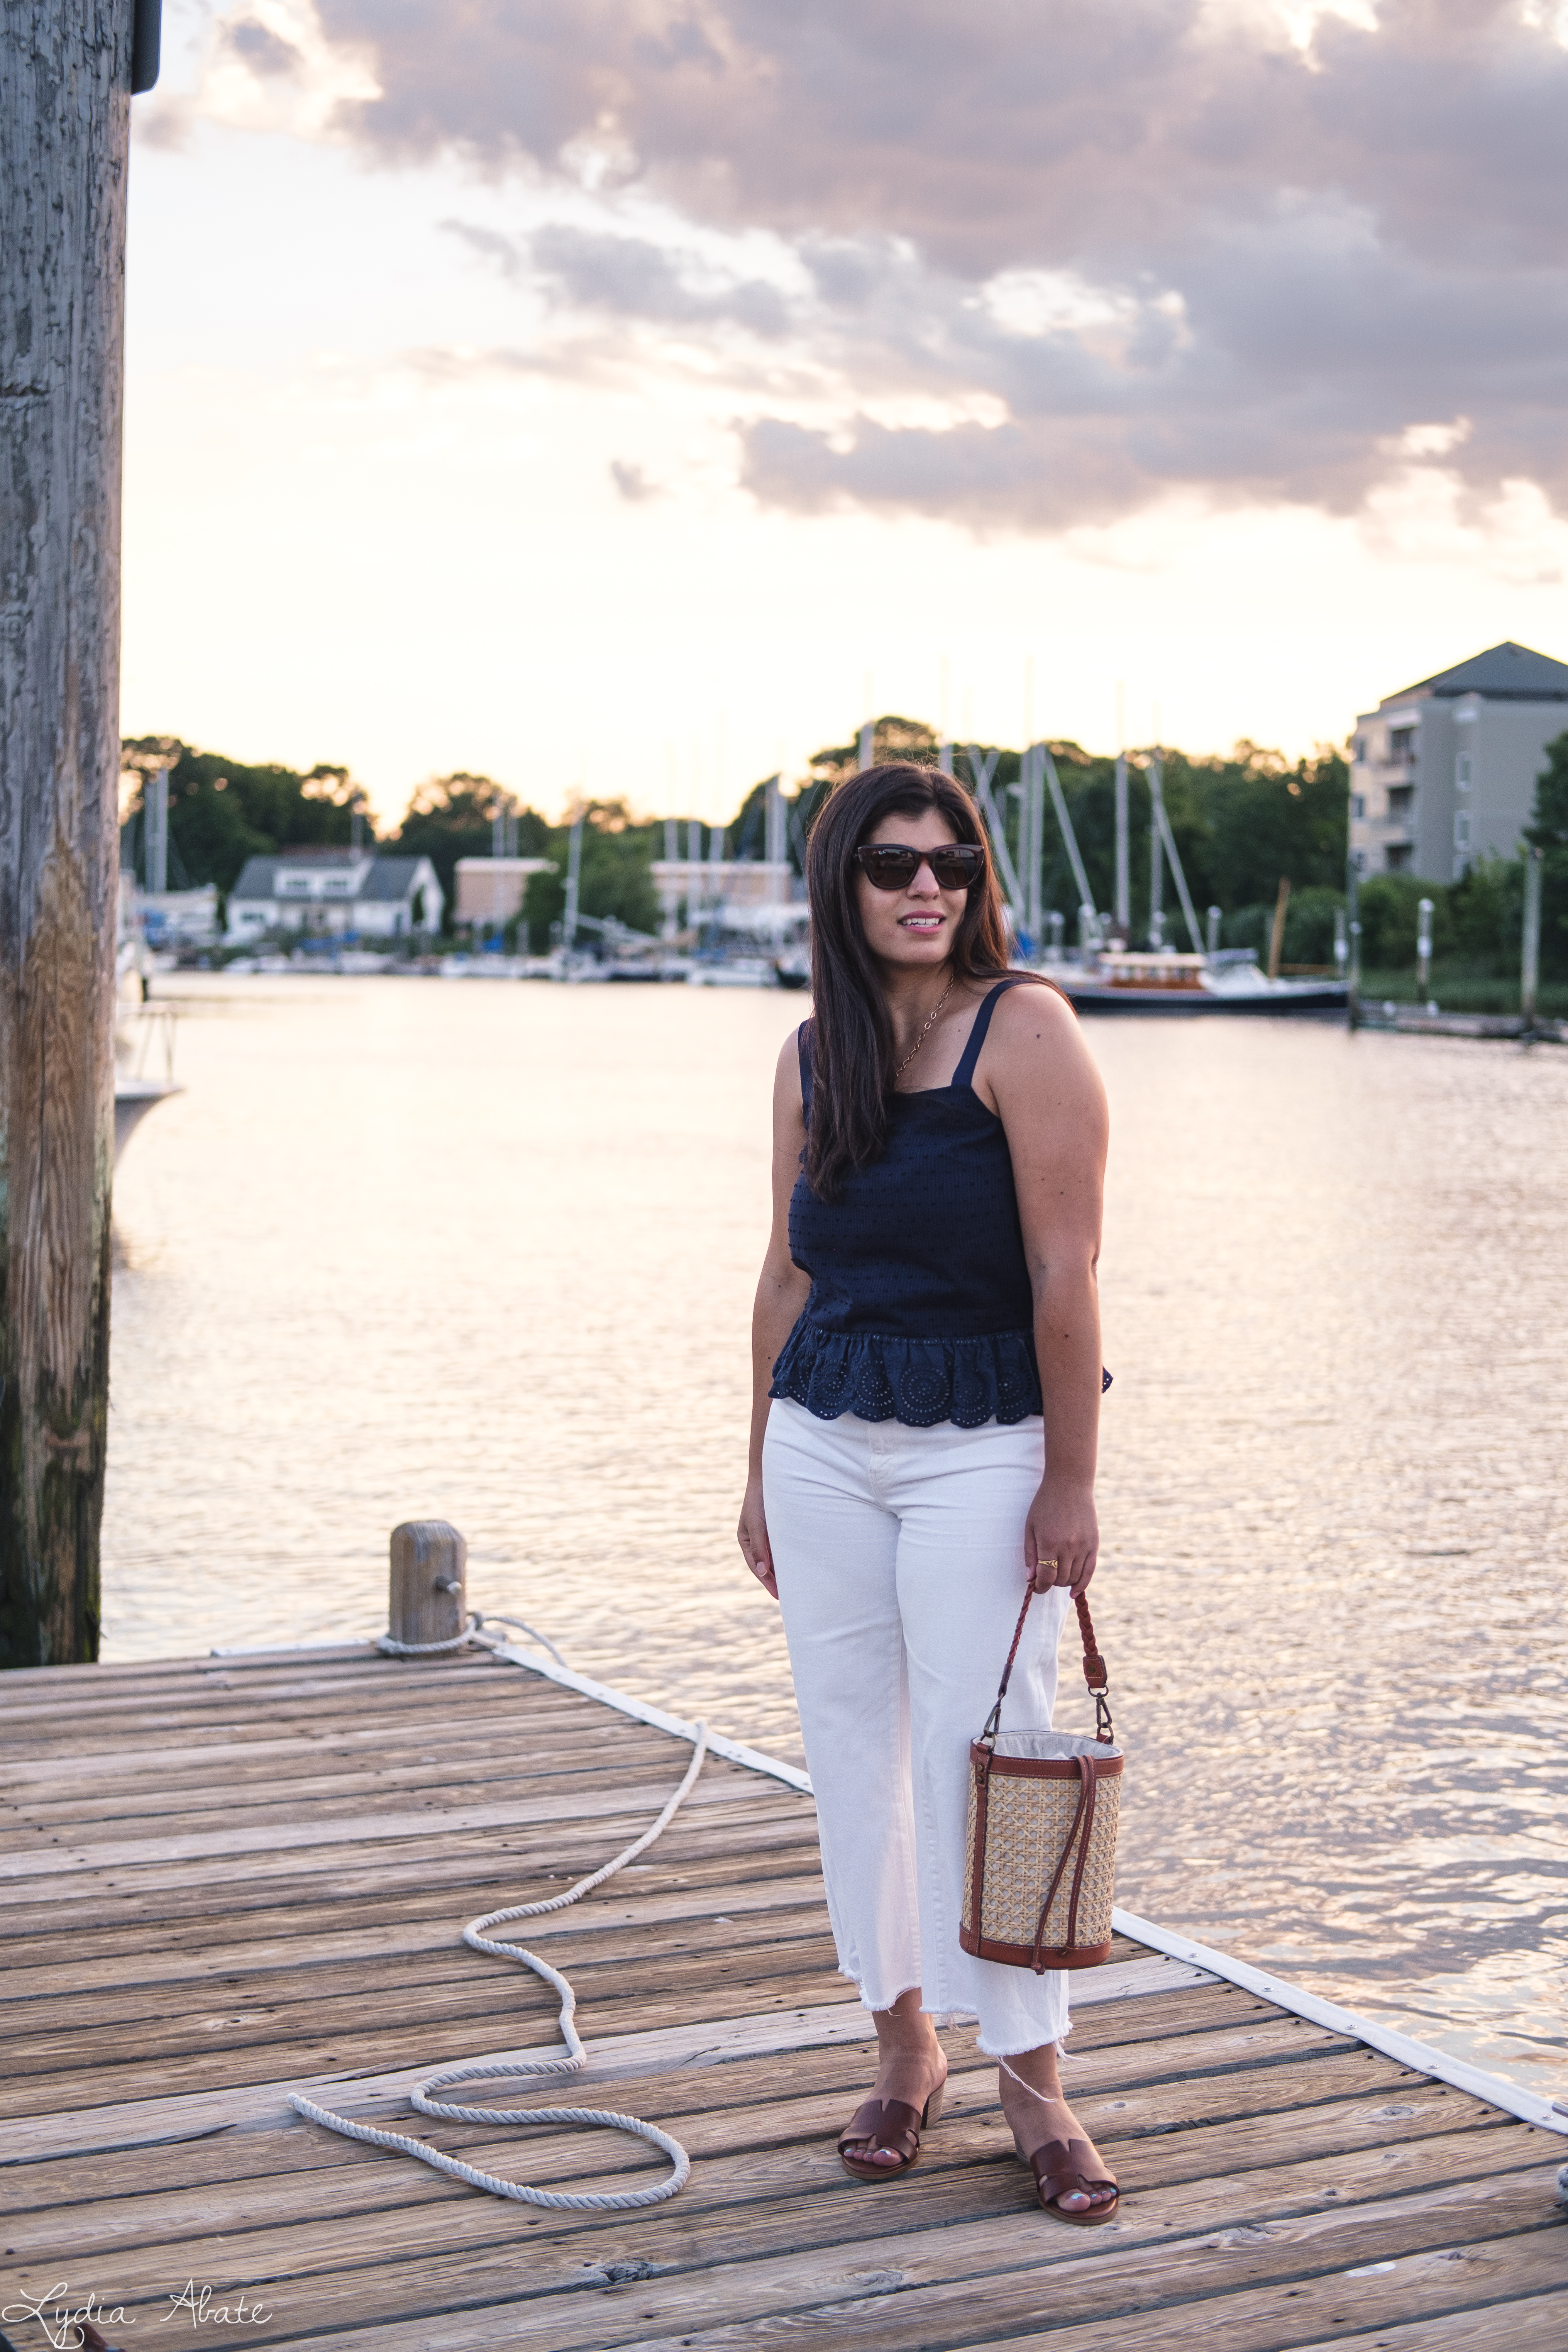 navy eyelet lace top, wide leg white jeans, caning bucket bag, brown sandals-2.jpg